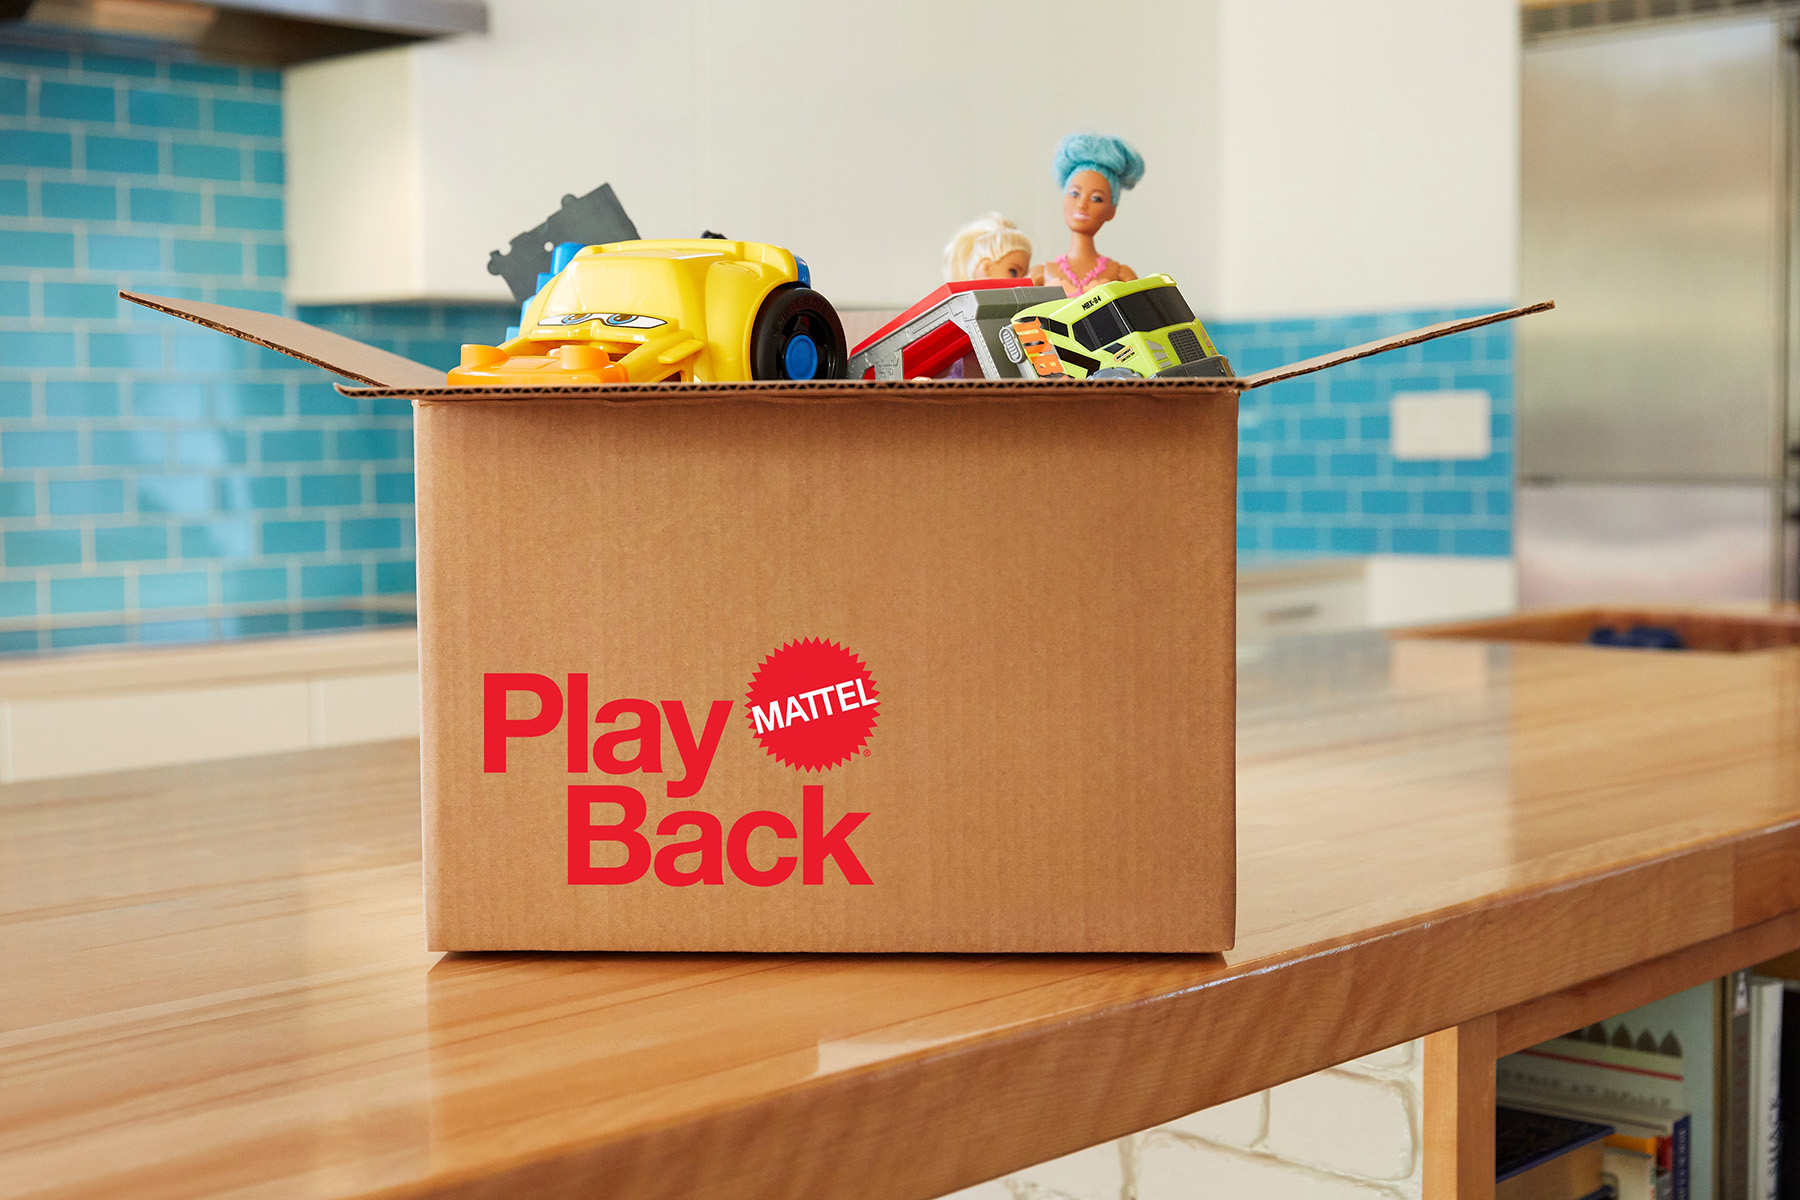 Play. Recycle. Repeat.